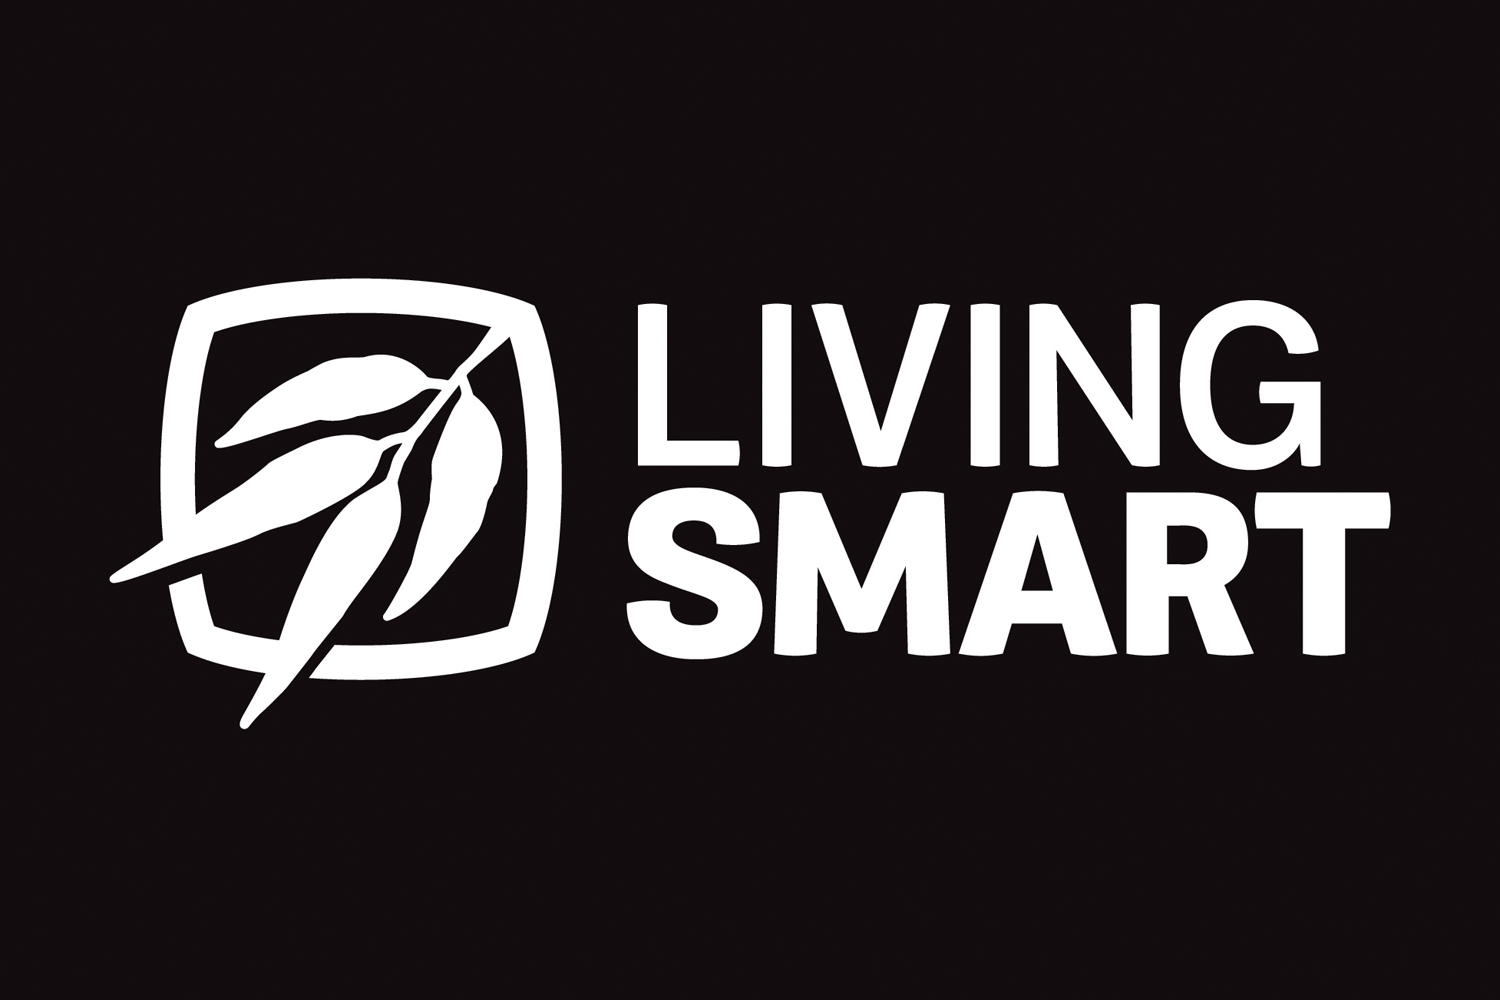 Tiamco-living-smart-1500x1000-logo-2.jpg